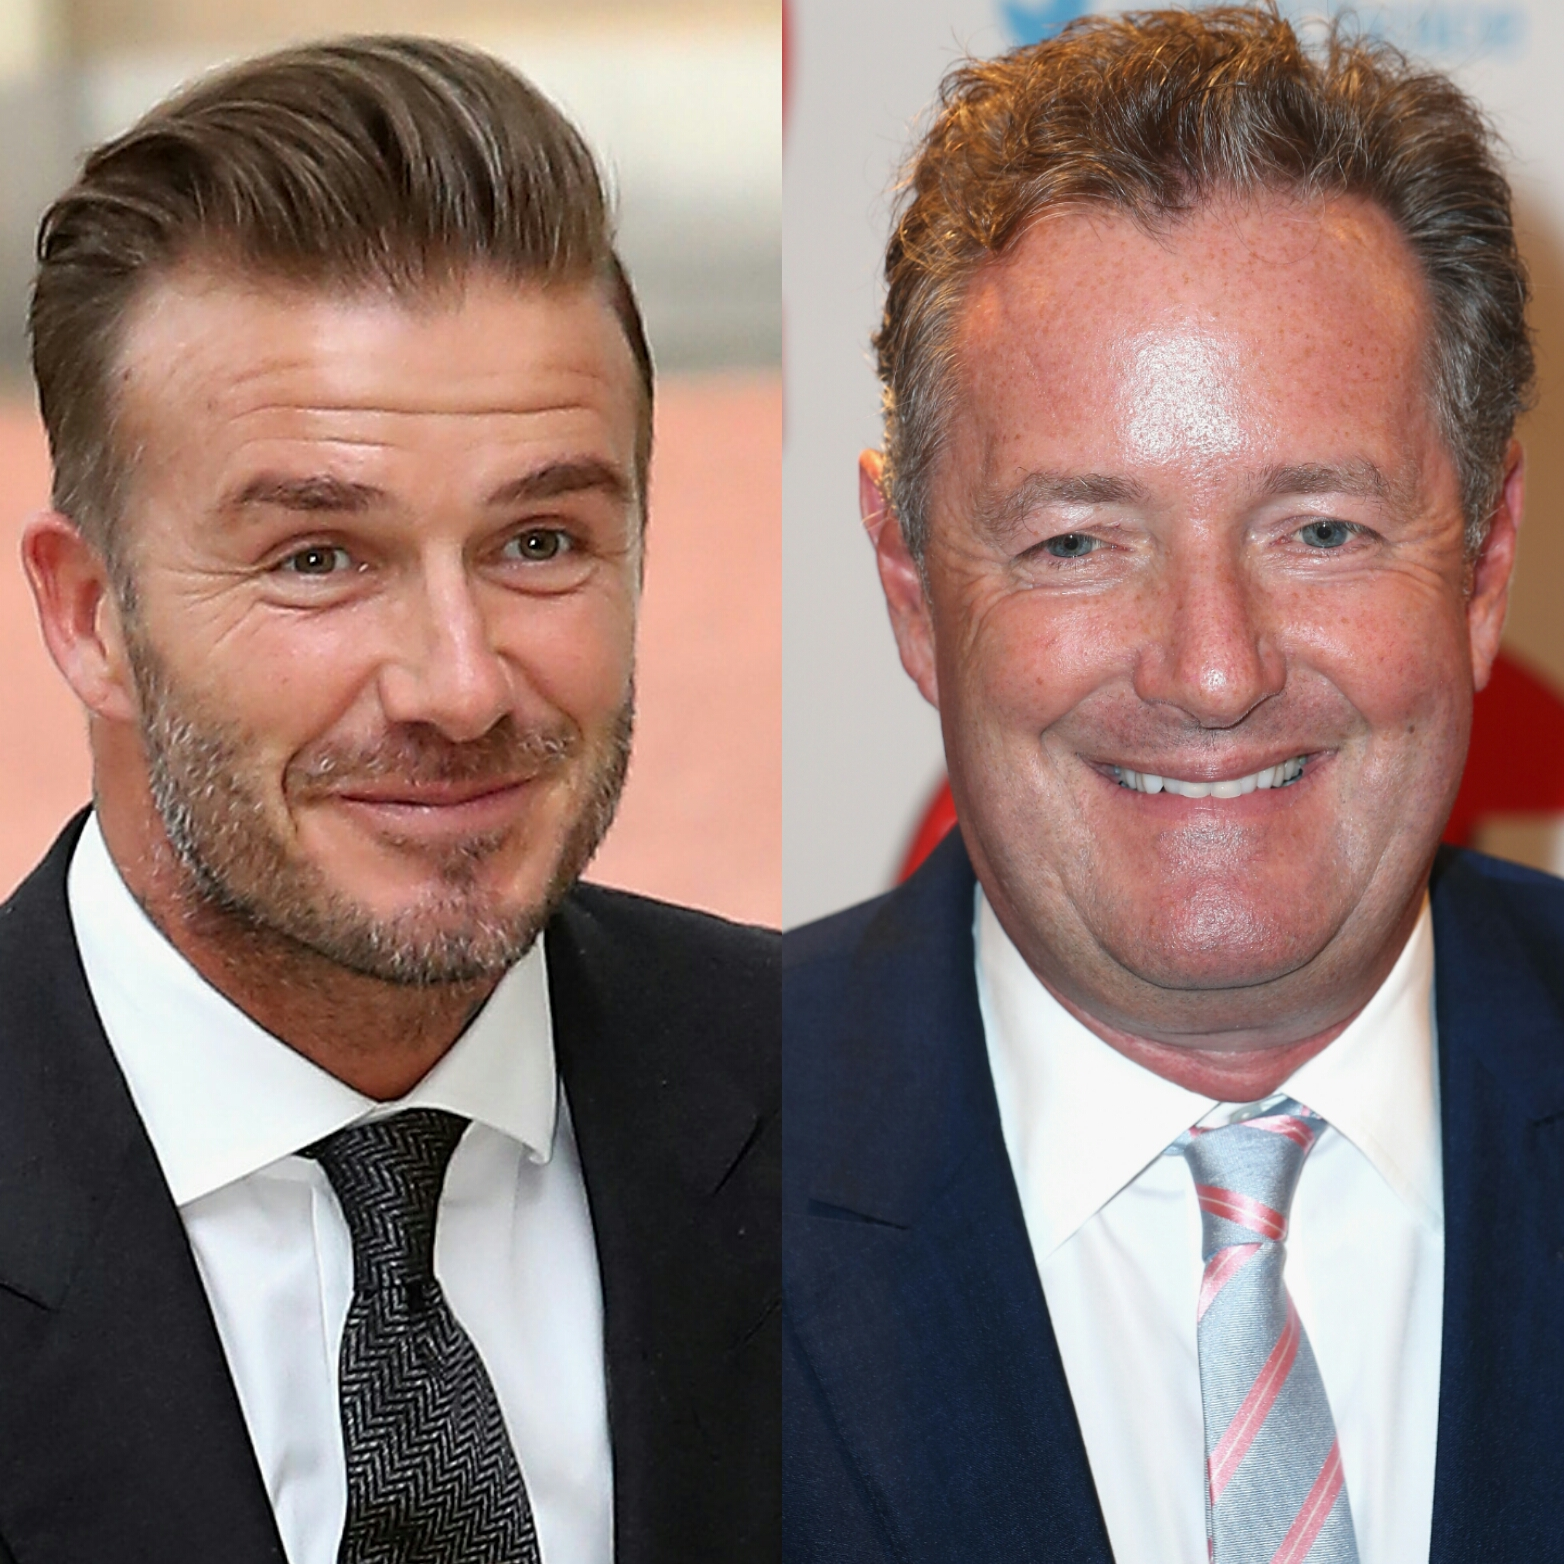 David Beckham Piers Morgan